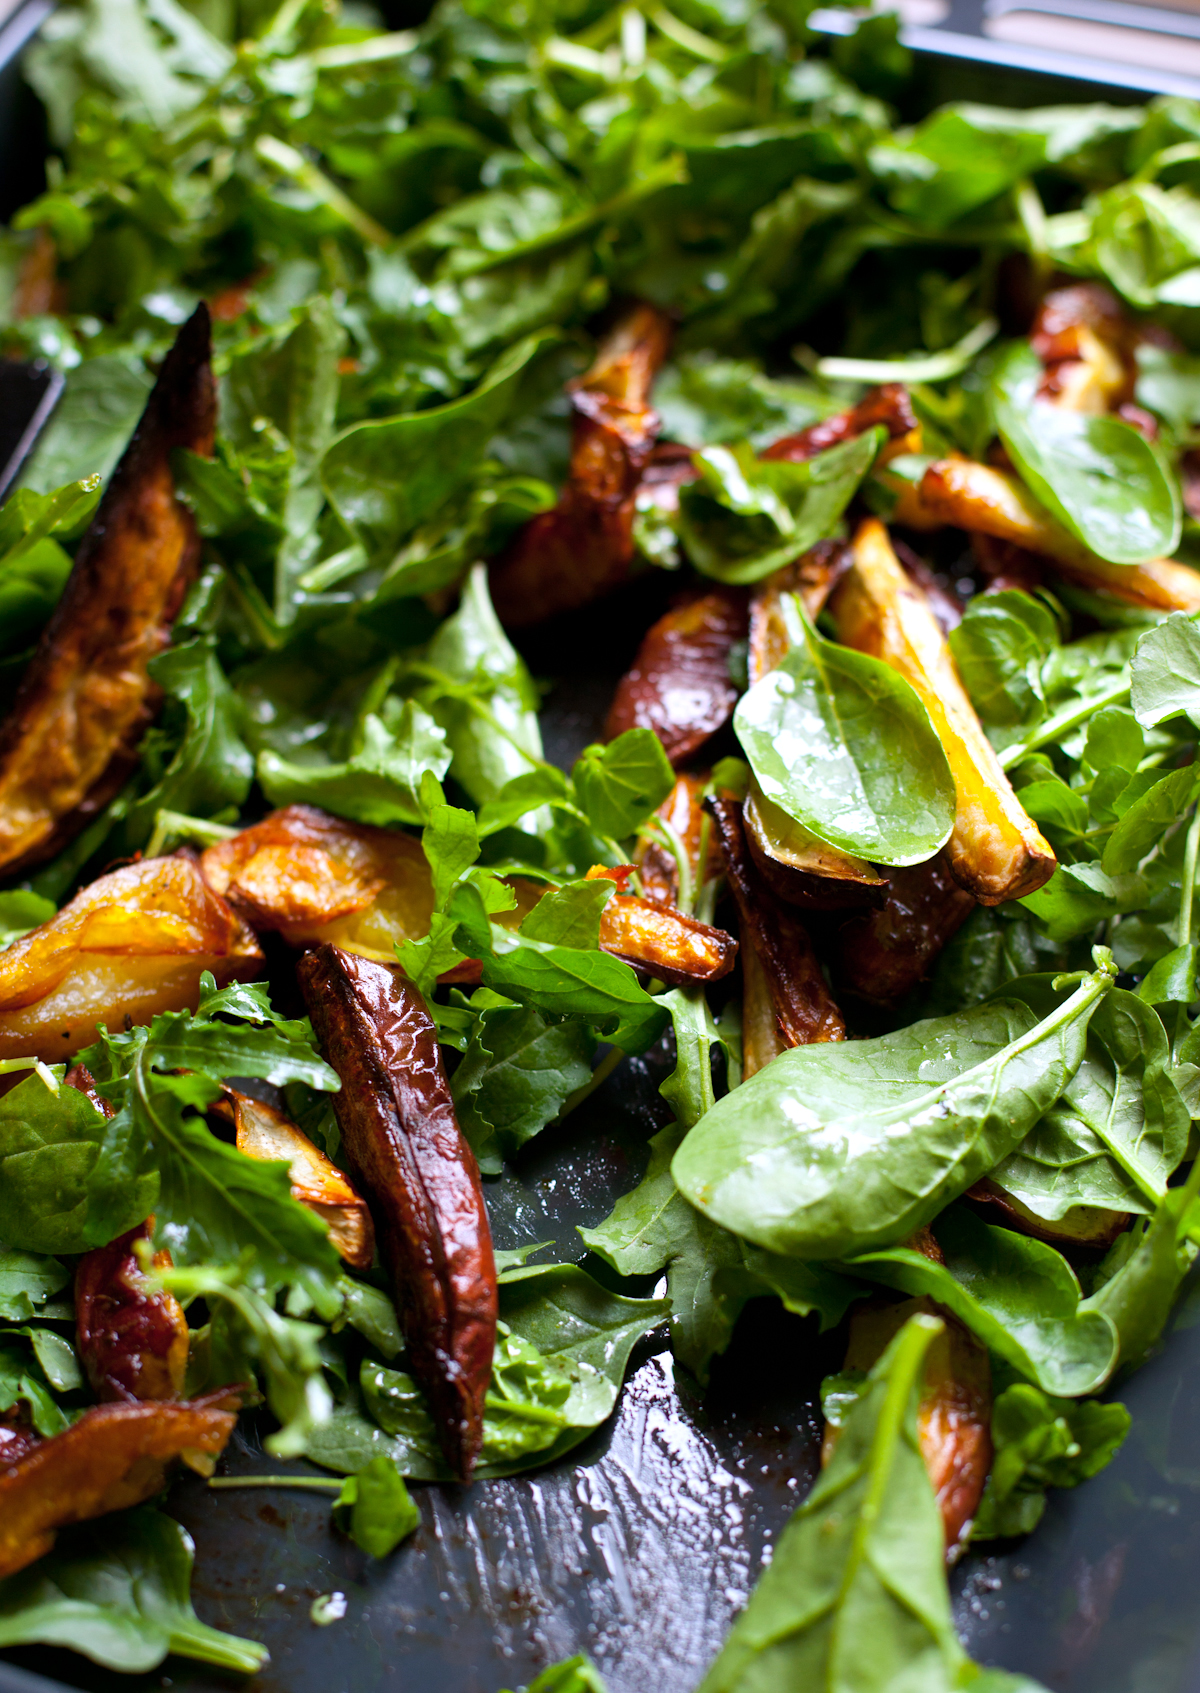 Sweet Potato Salad with Sour Cream and Coriander Dressing